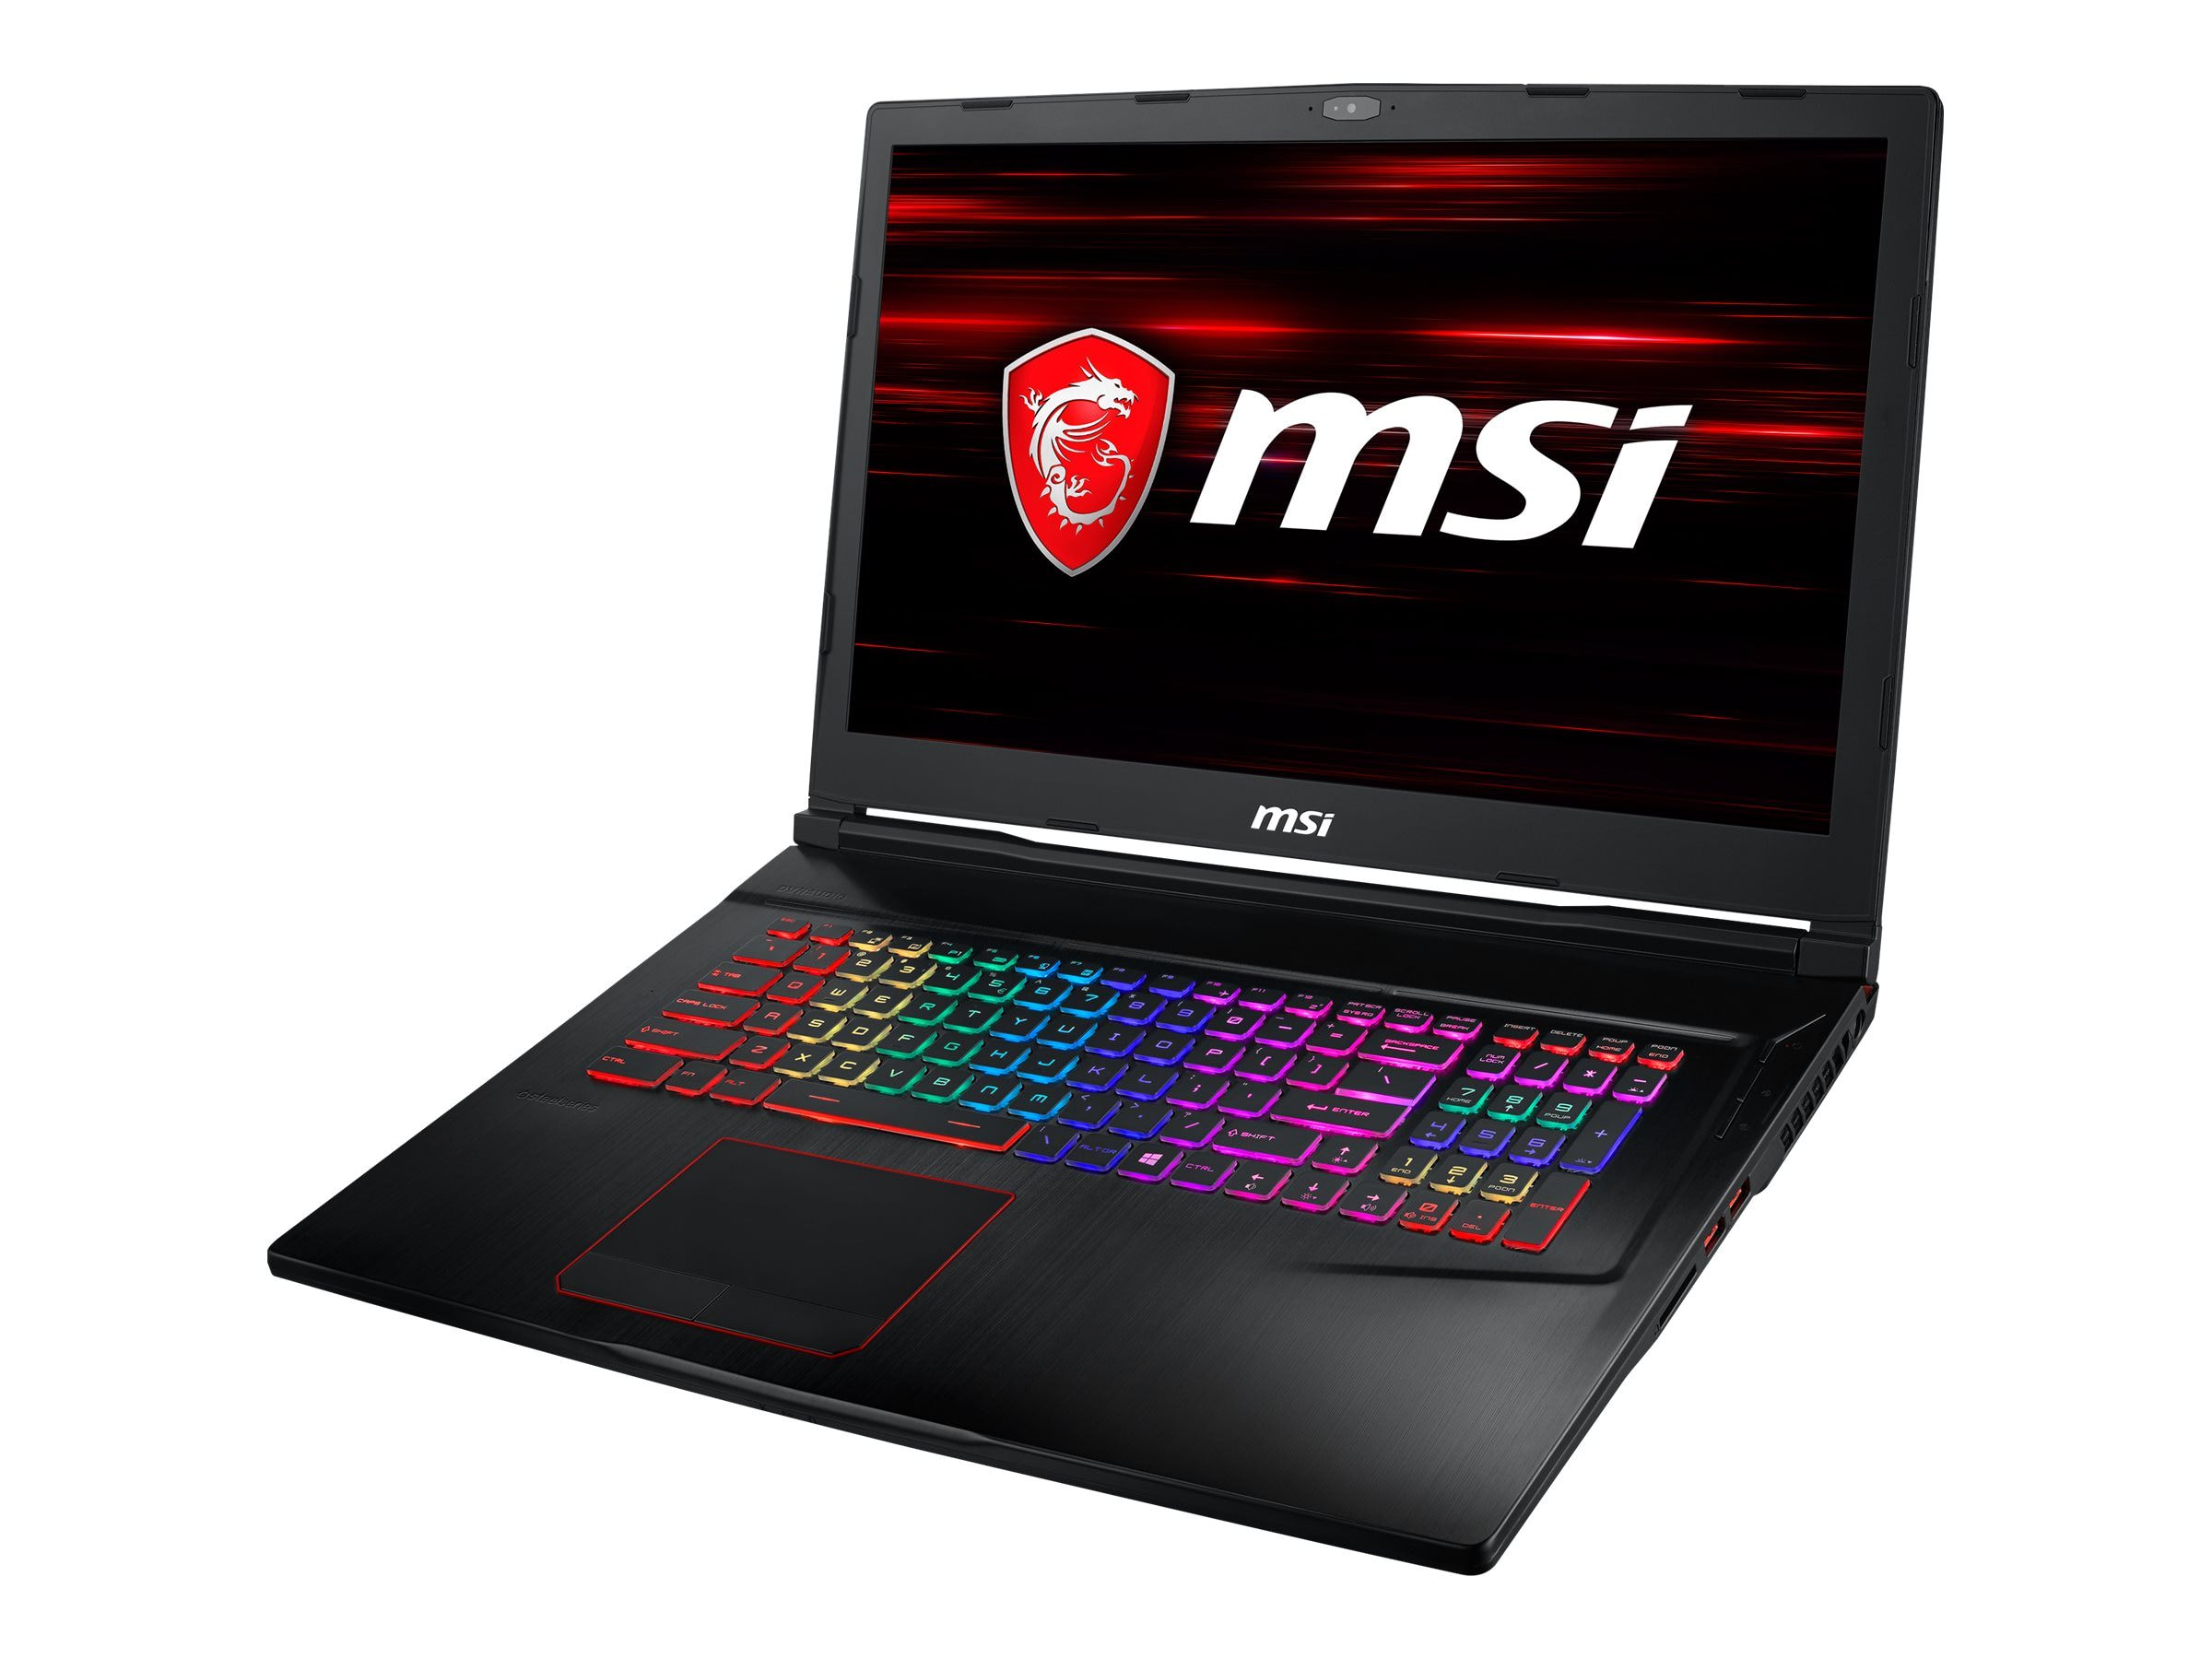 "MSI 15.6"" Gaming Laptop (6 Core i7-8750H / 16GB / 1TB HDD & 128GB SSD)"